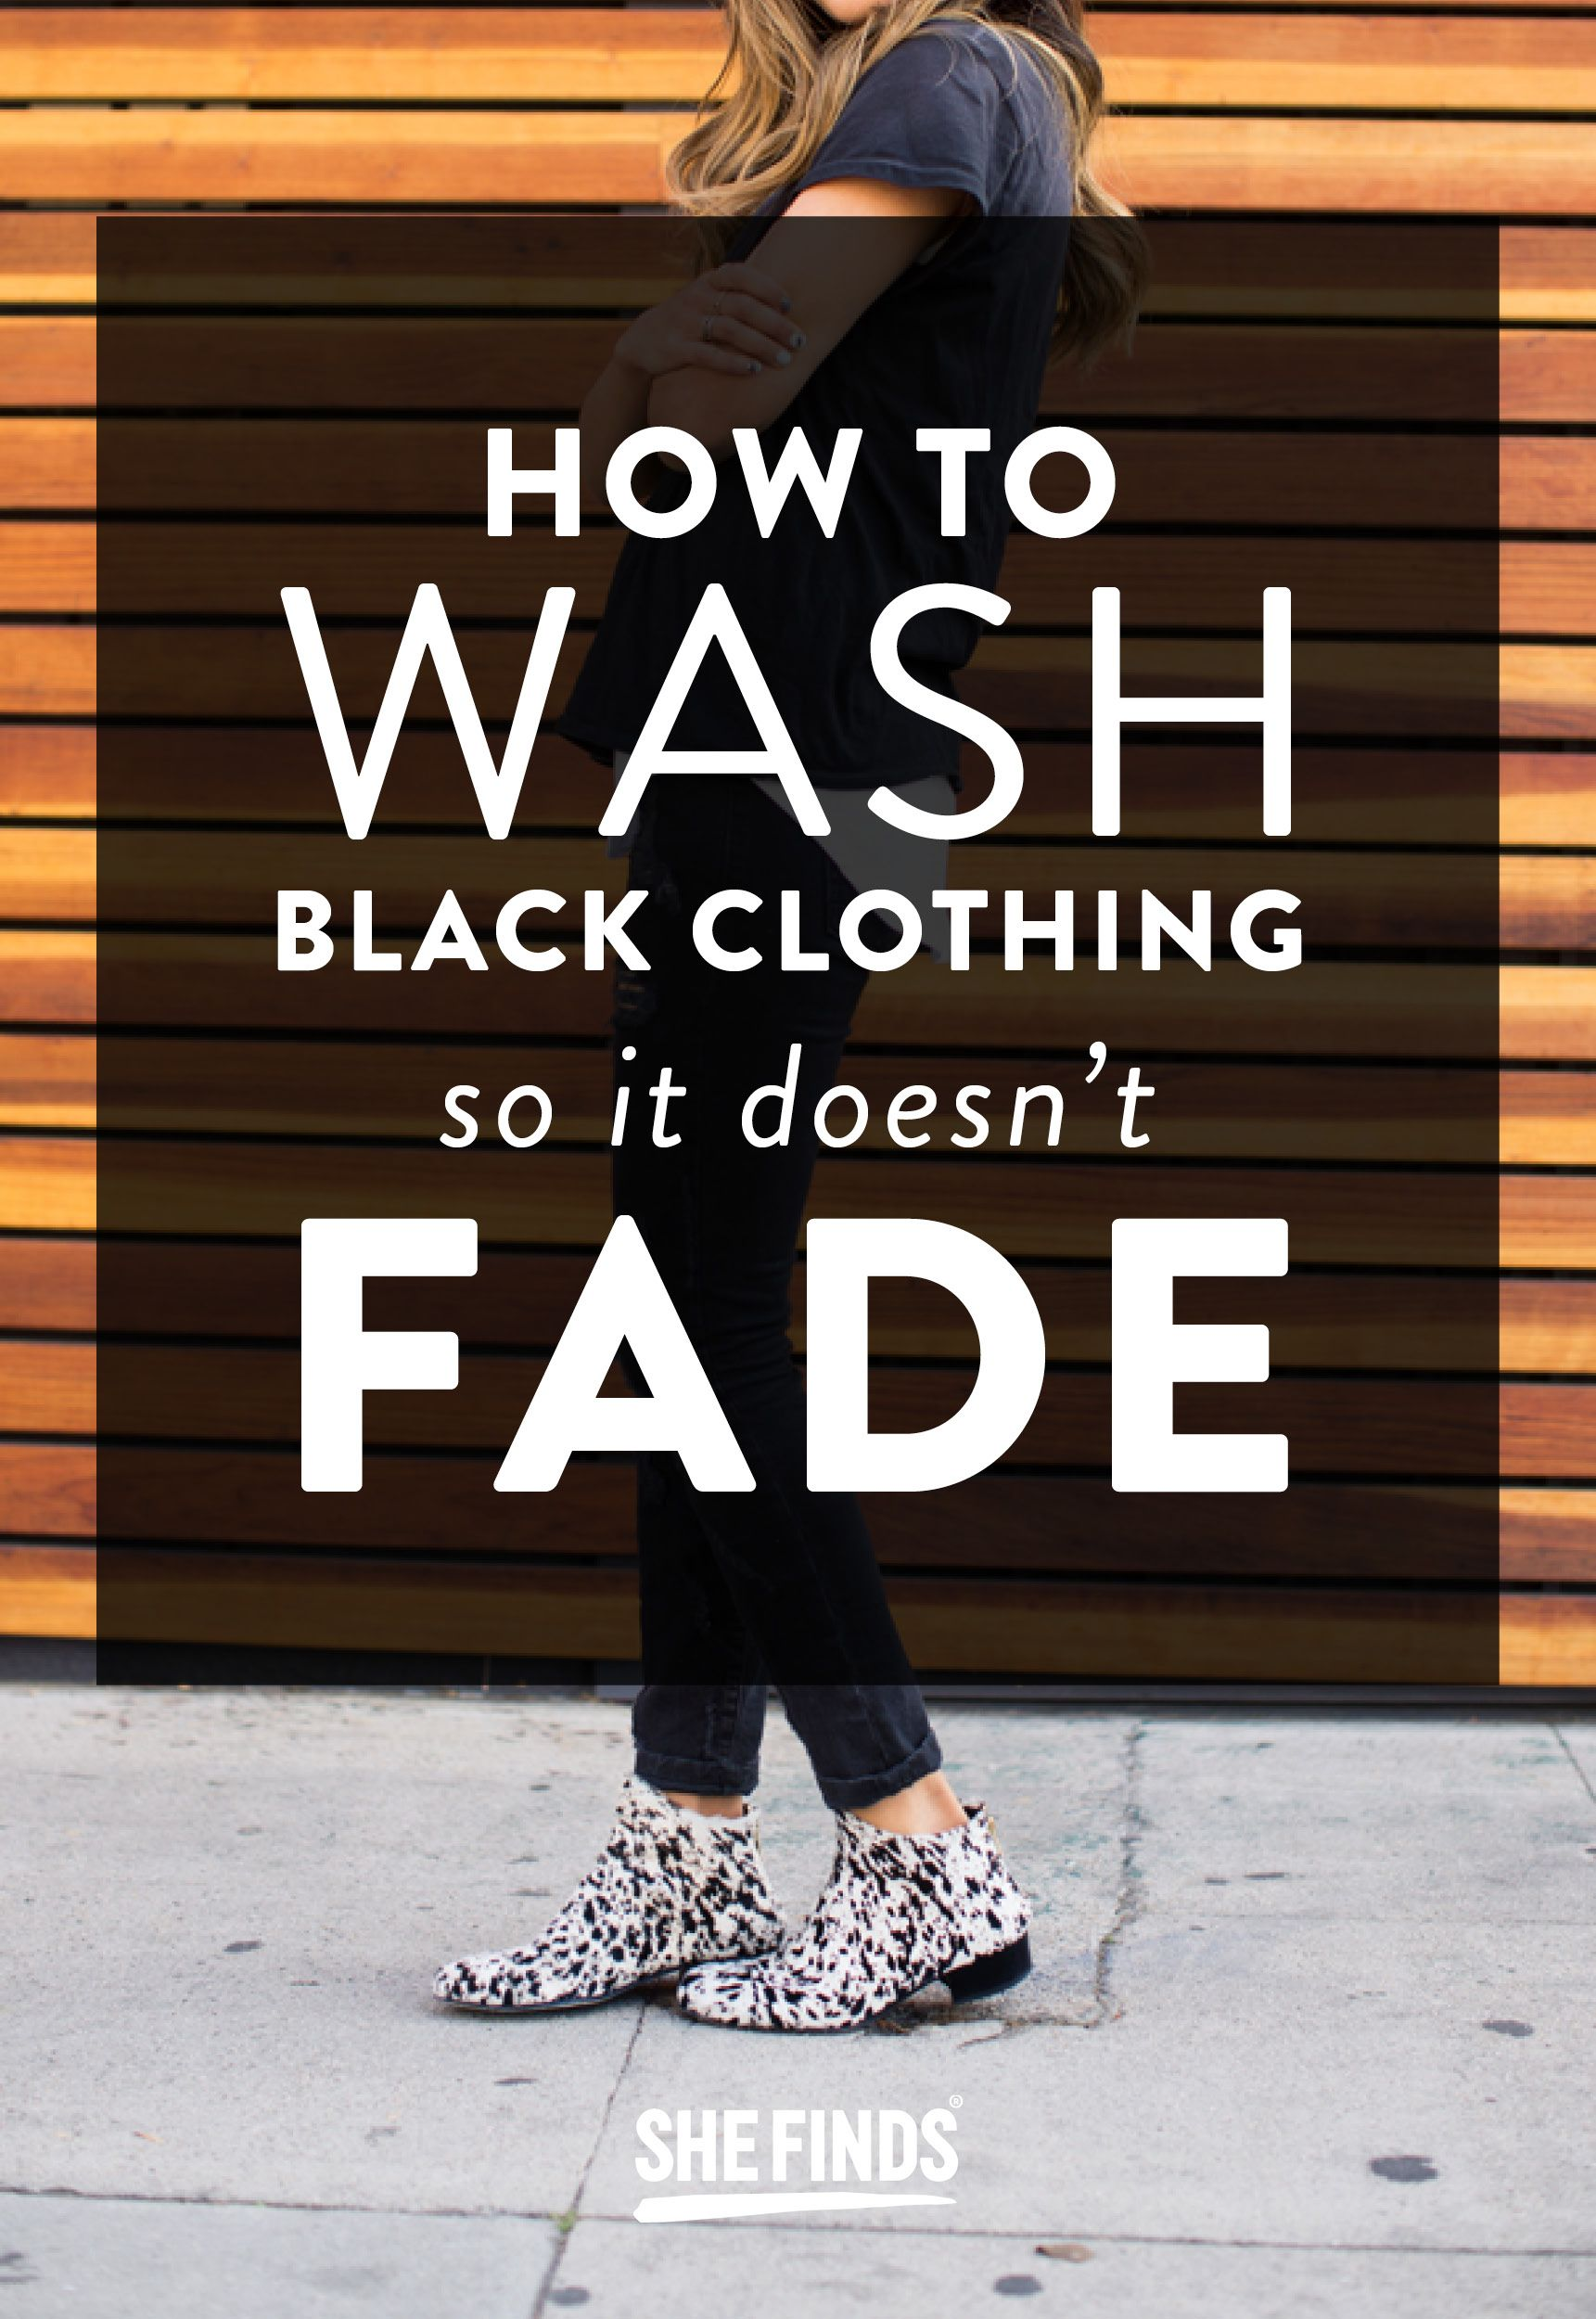 How To Wash Black Clothing So It Doesn't Fade